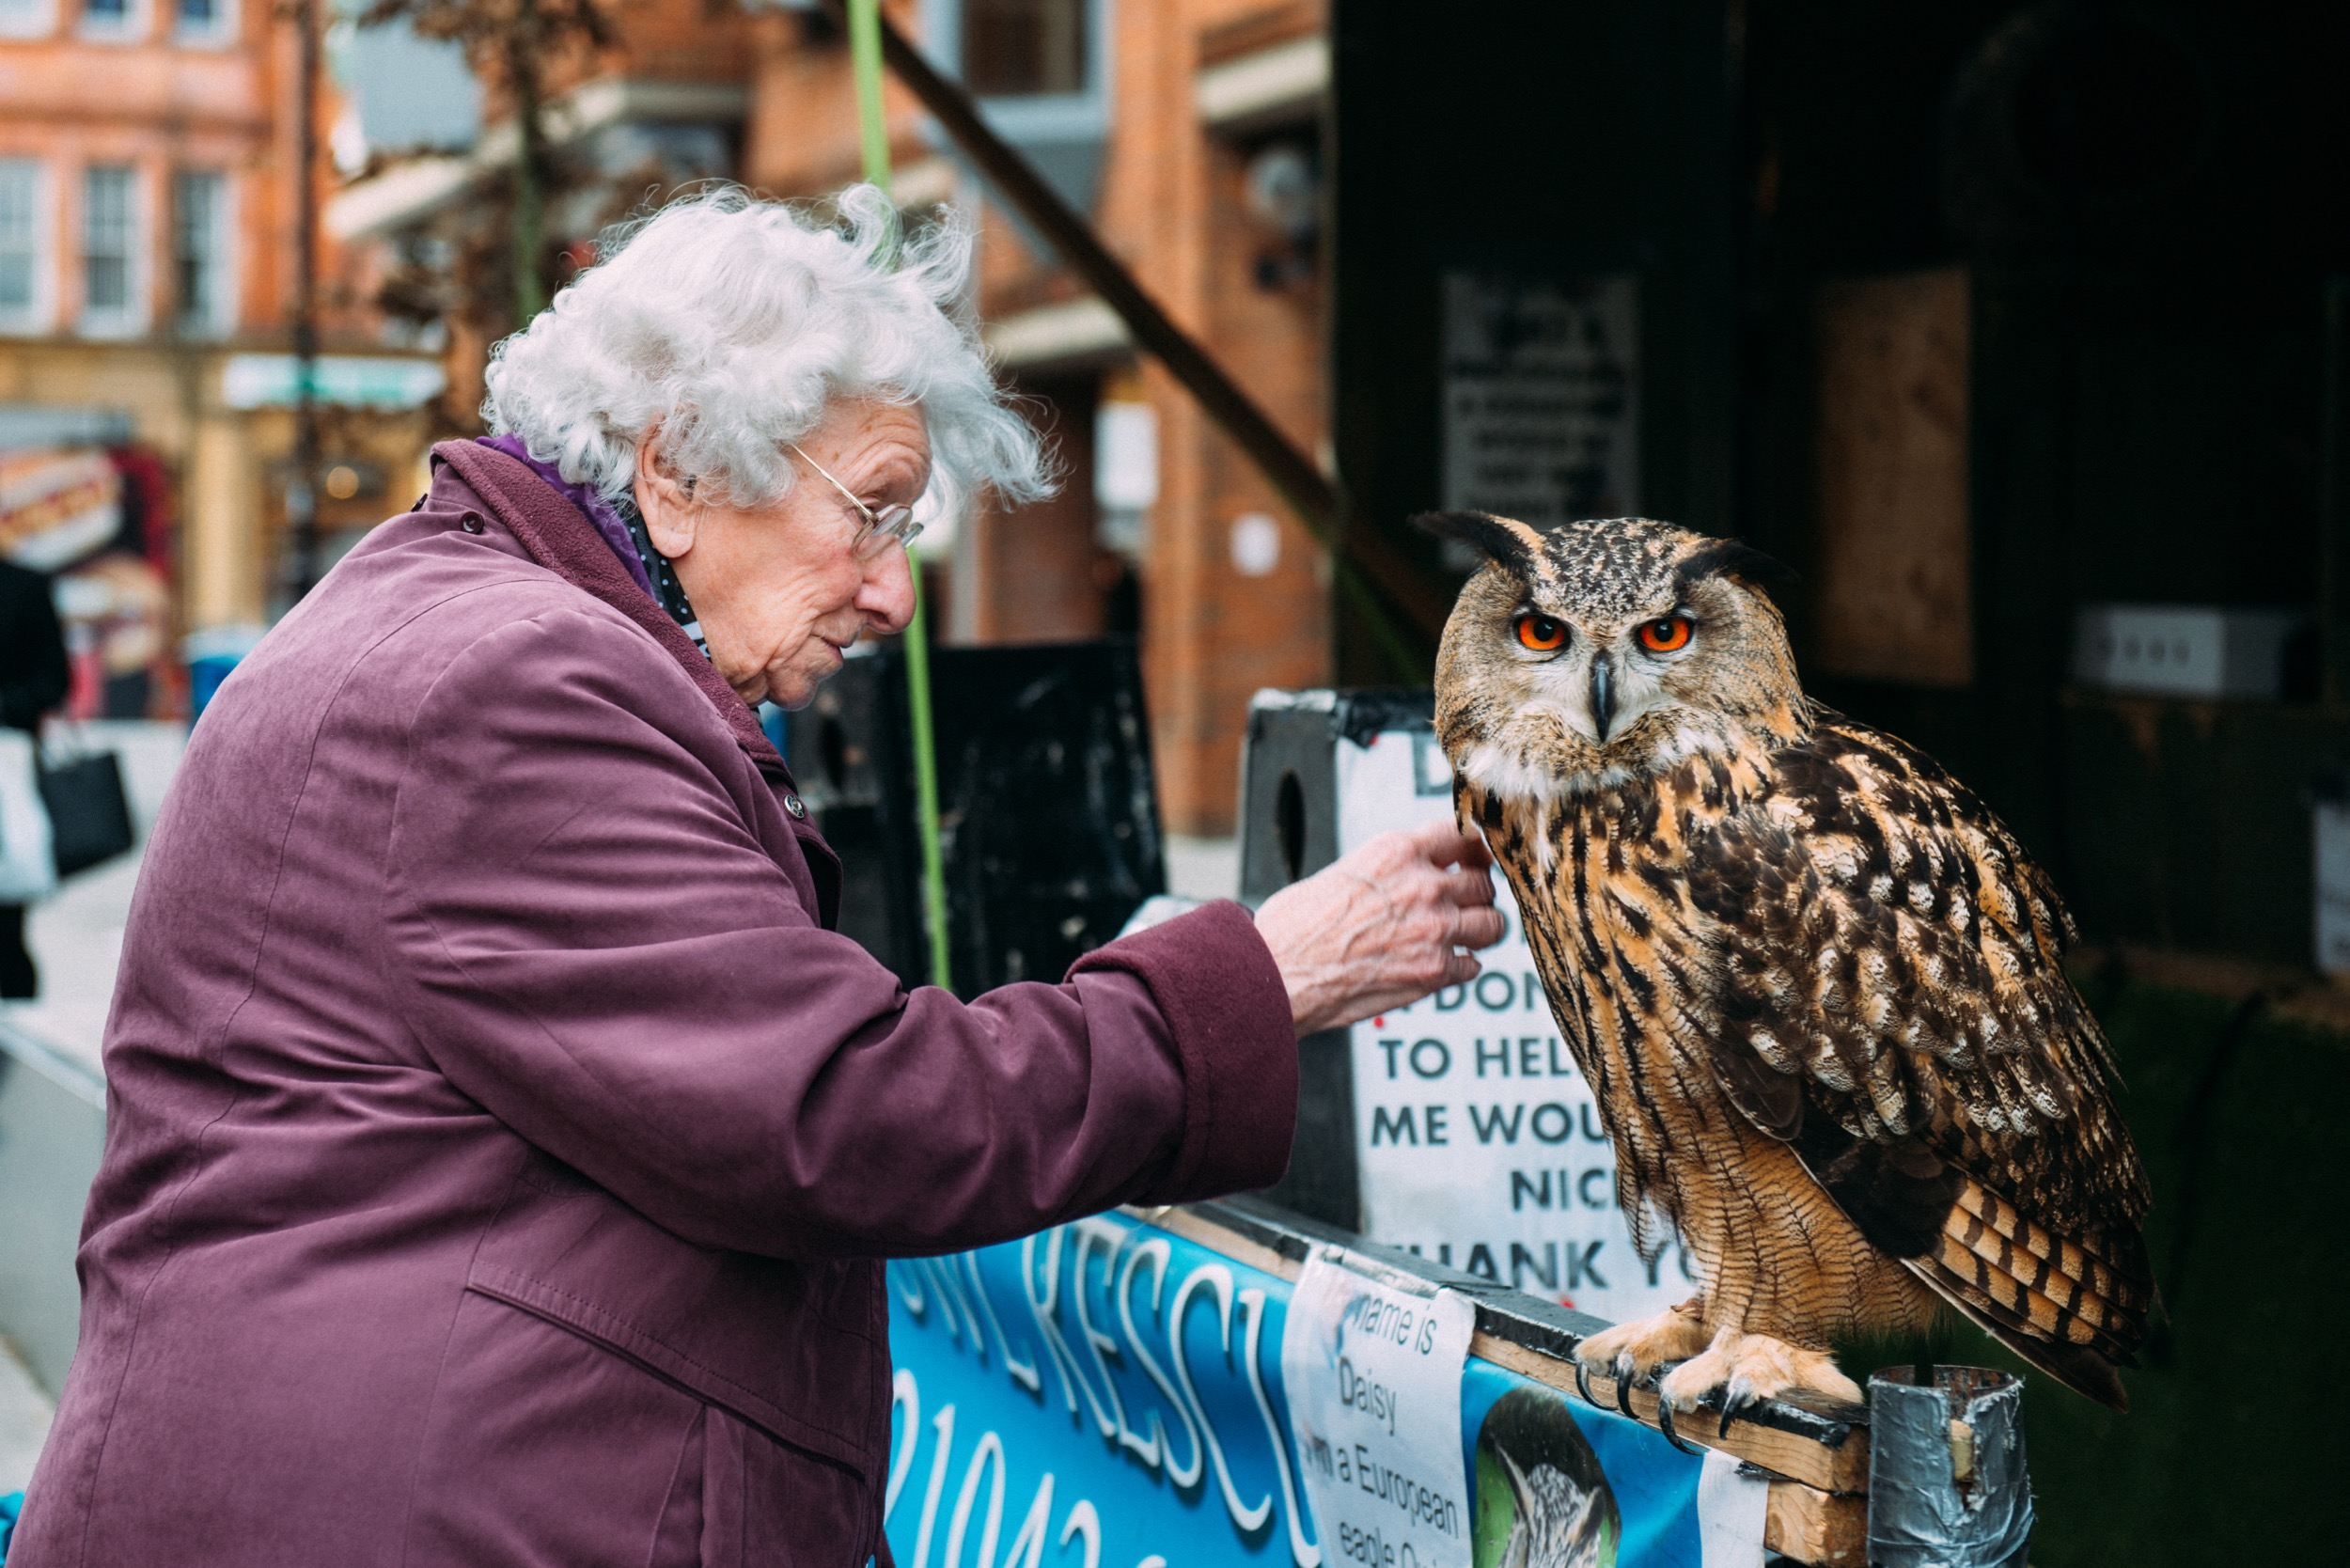 This owl was just amazing